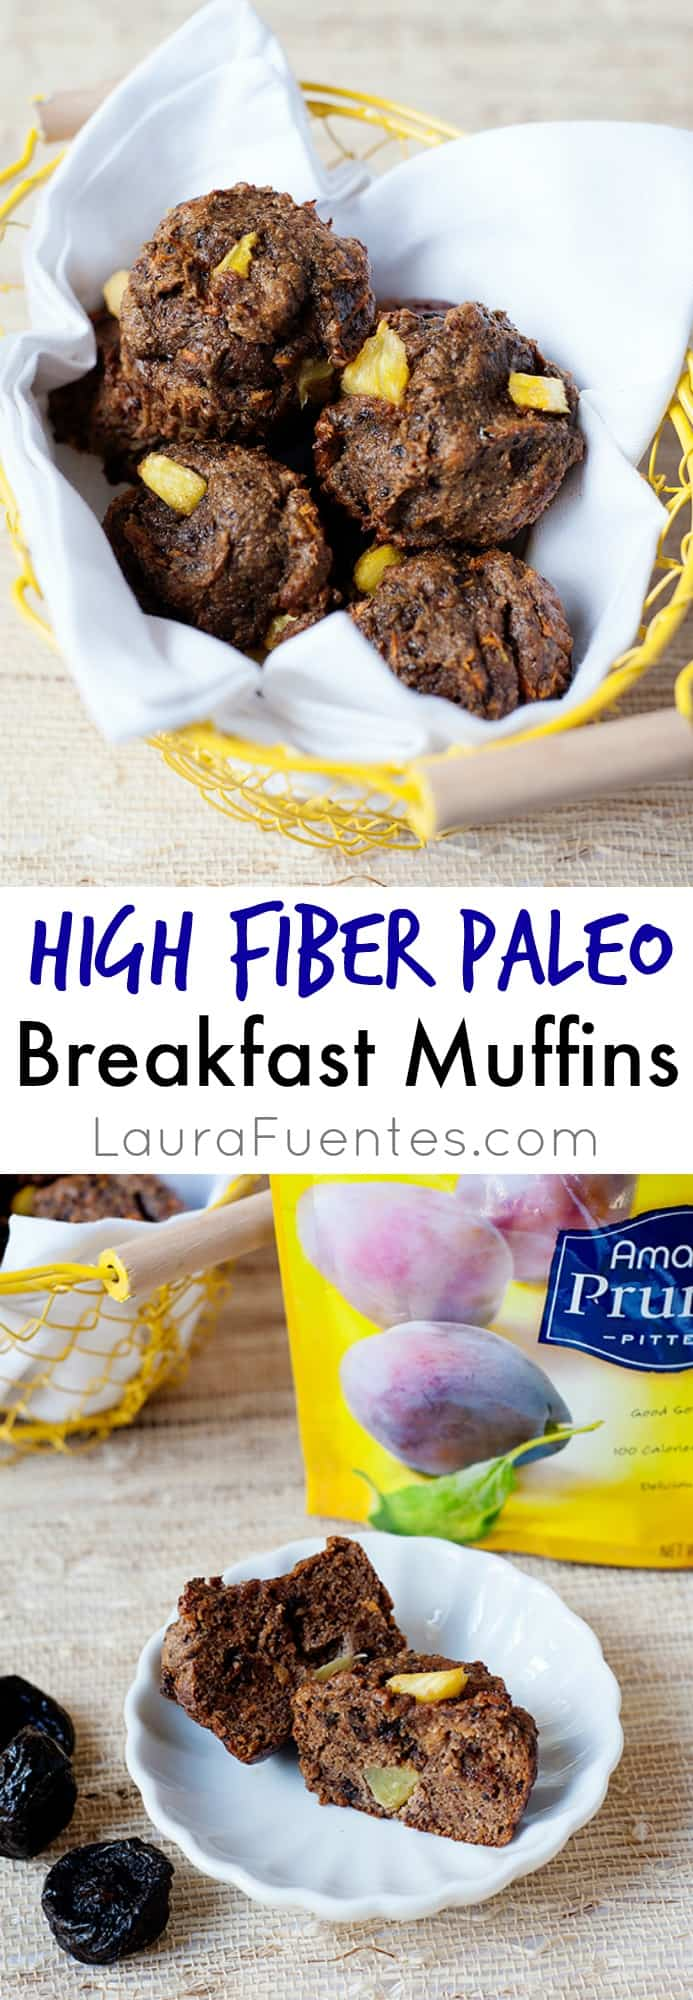 High Fiber Paleo Breakfast Muffins: If you've been searching for a tasty way to add more fiber to your diet without adding more grains, you are going to love this sweet, moist, and delicious recipe.